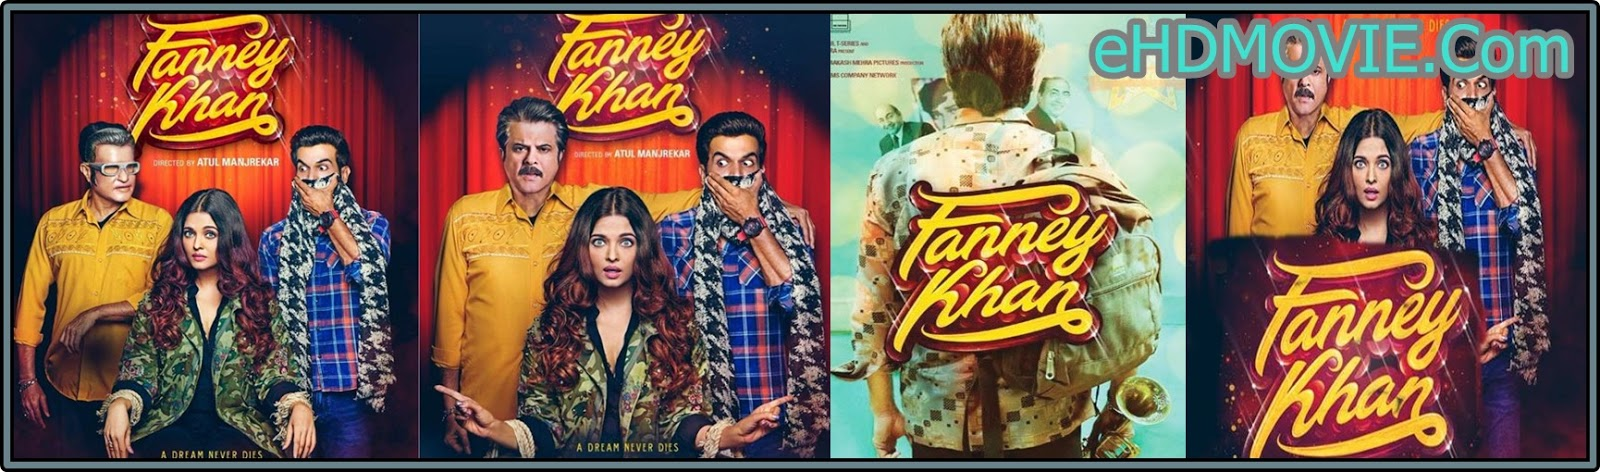 Fanney Khan 2018 Full Movie Hindi 1080p - 720p - HEVC - 480p ORG WEB-DL 400MB - 600MB - 1.3GB - 2.4GB ESubs Free Download